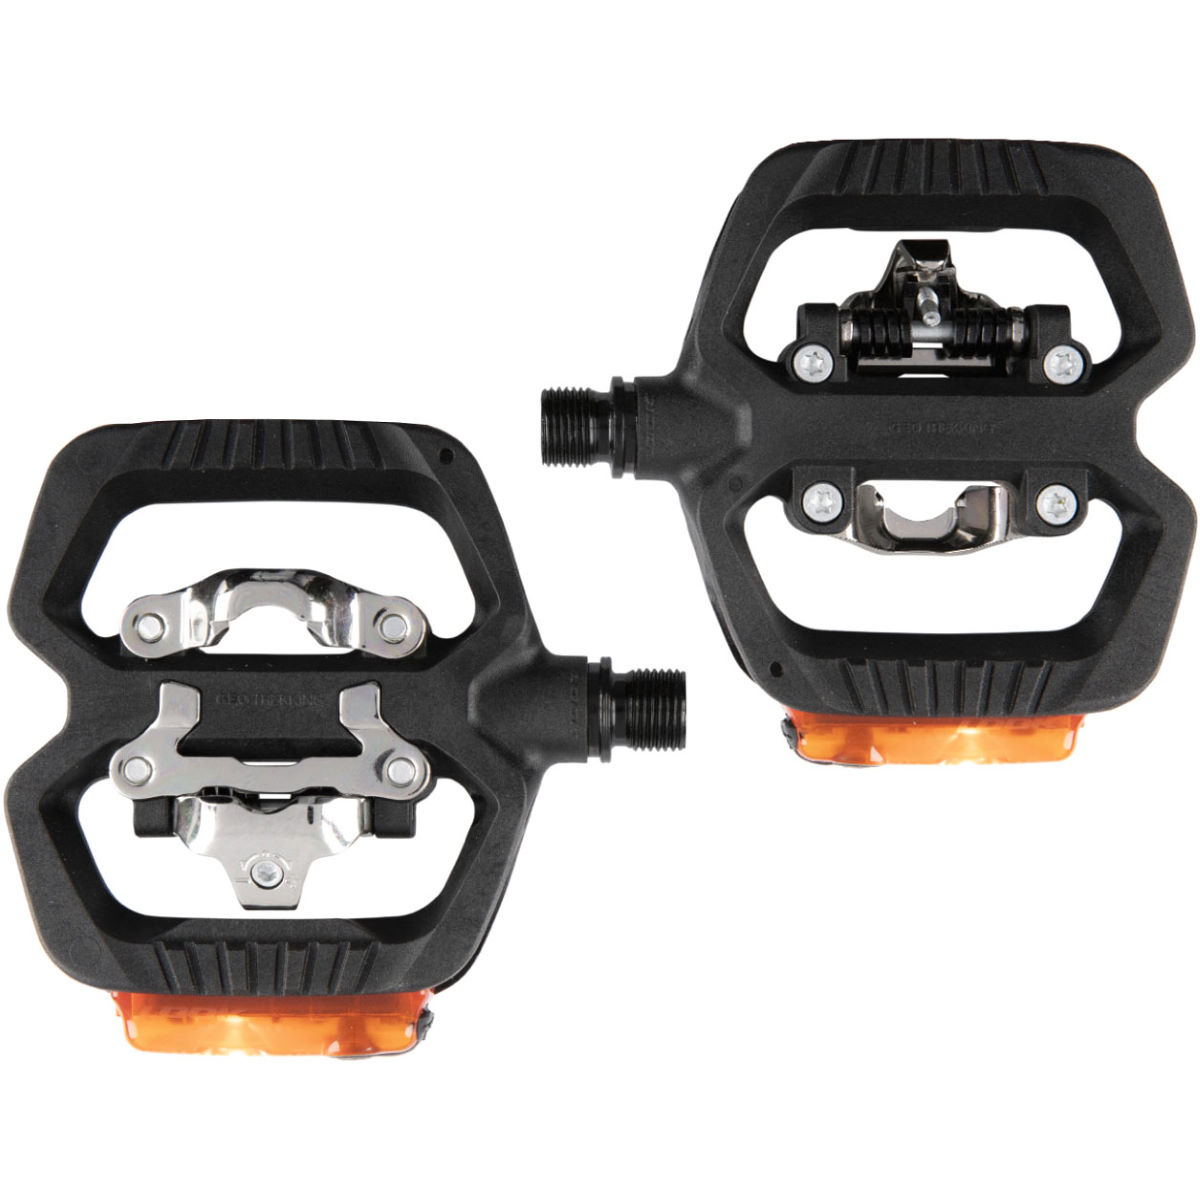 Look Geo Trekking Roc Vision Pedals - One Size Black  Clip-in Pedals